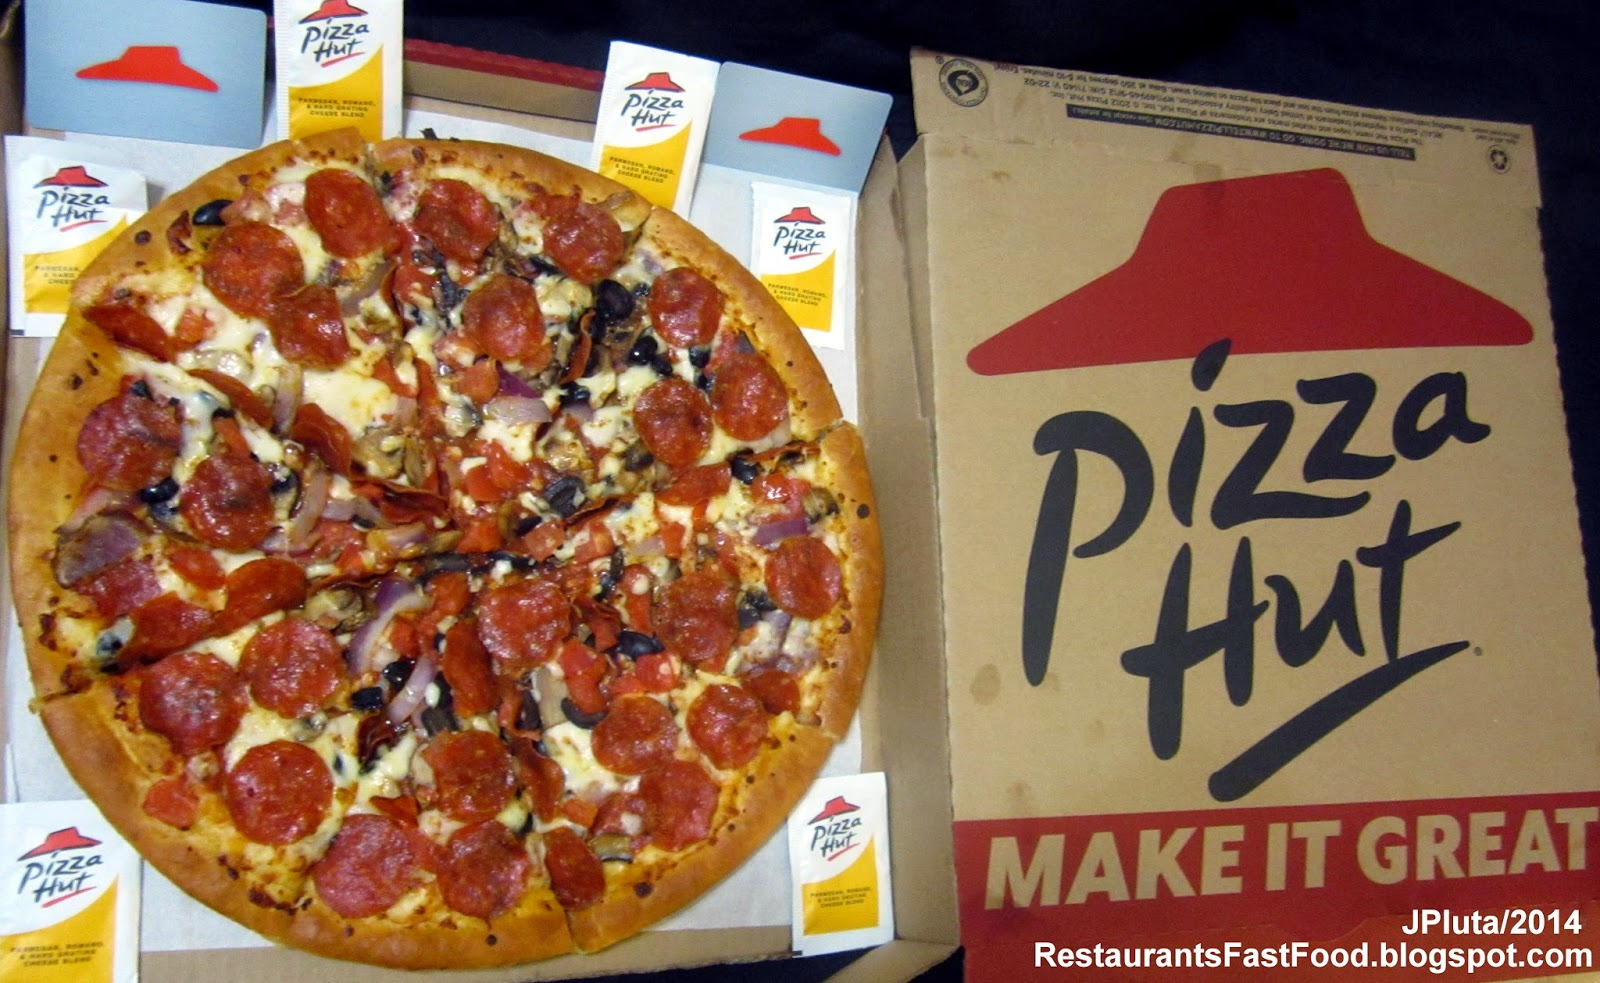 Pizza Hut Pepperoni Large 2 Lb 12 Oz With Added Onions Mushrooms Black Olives And Diced Tomato Restaurant Delivery